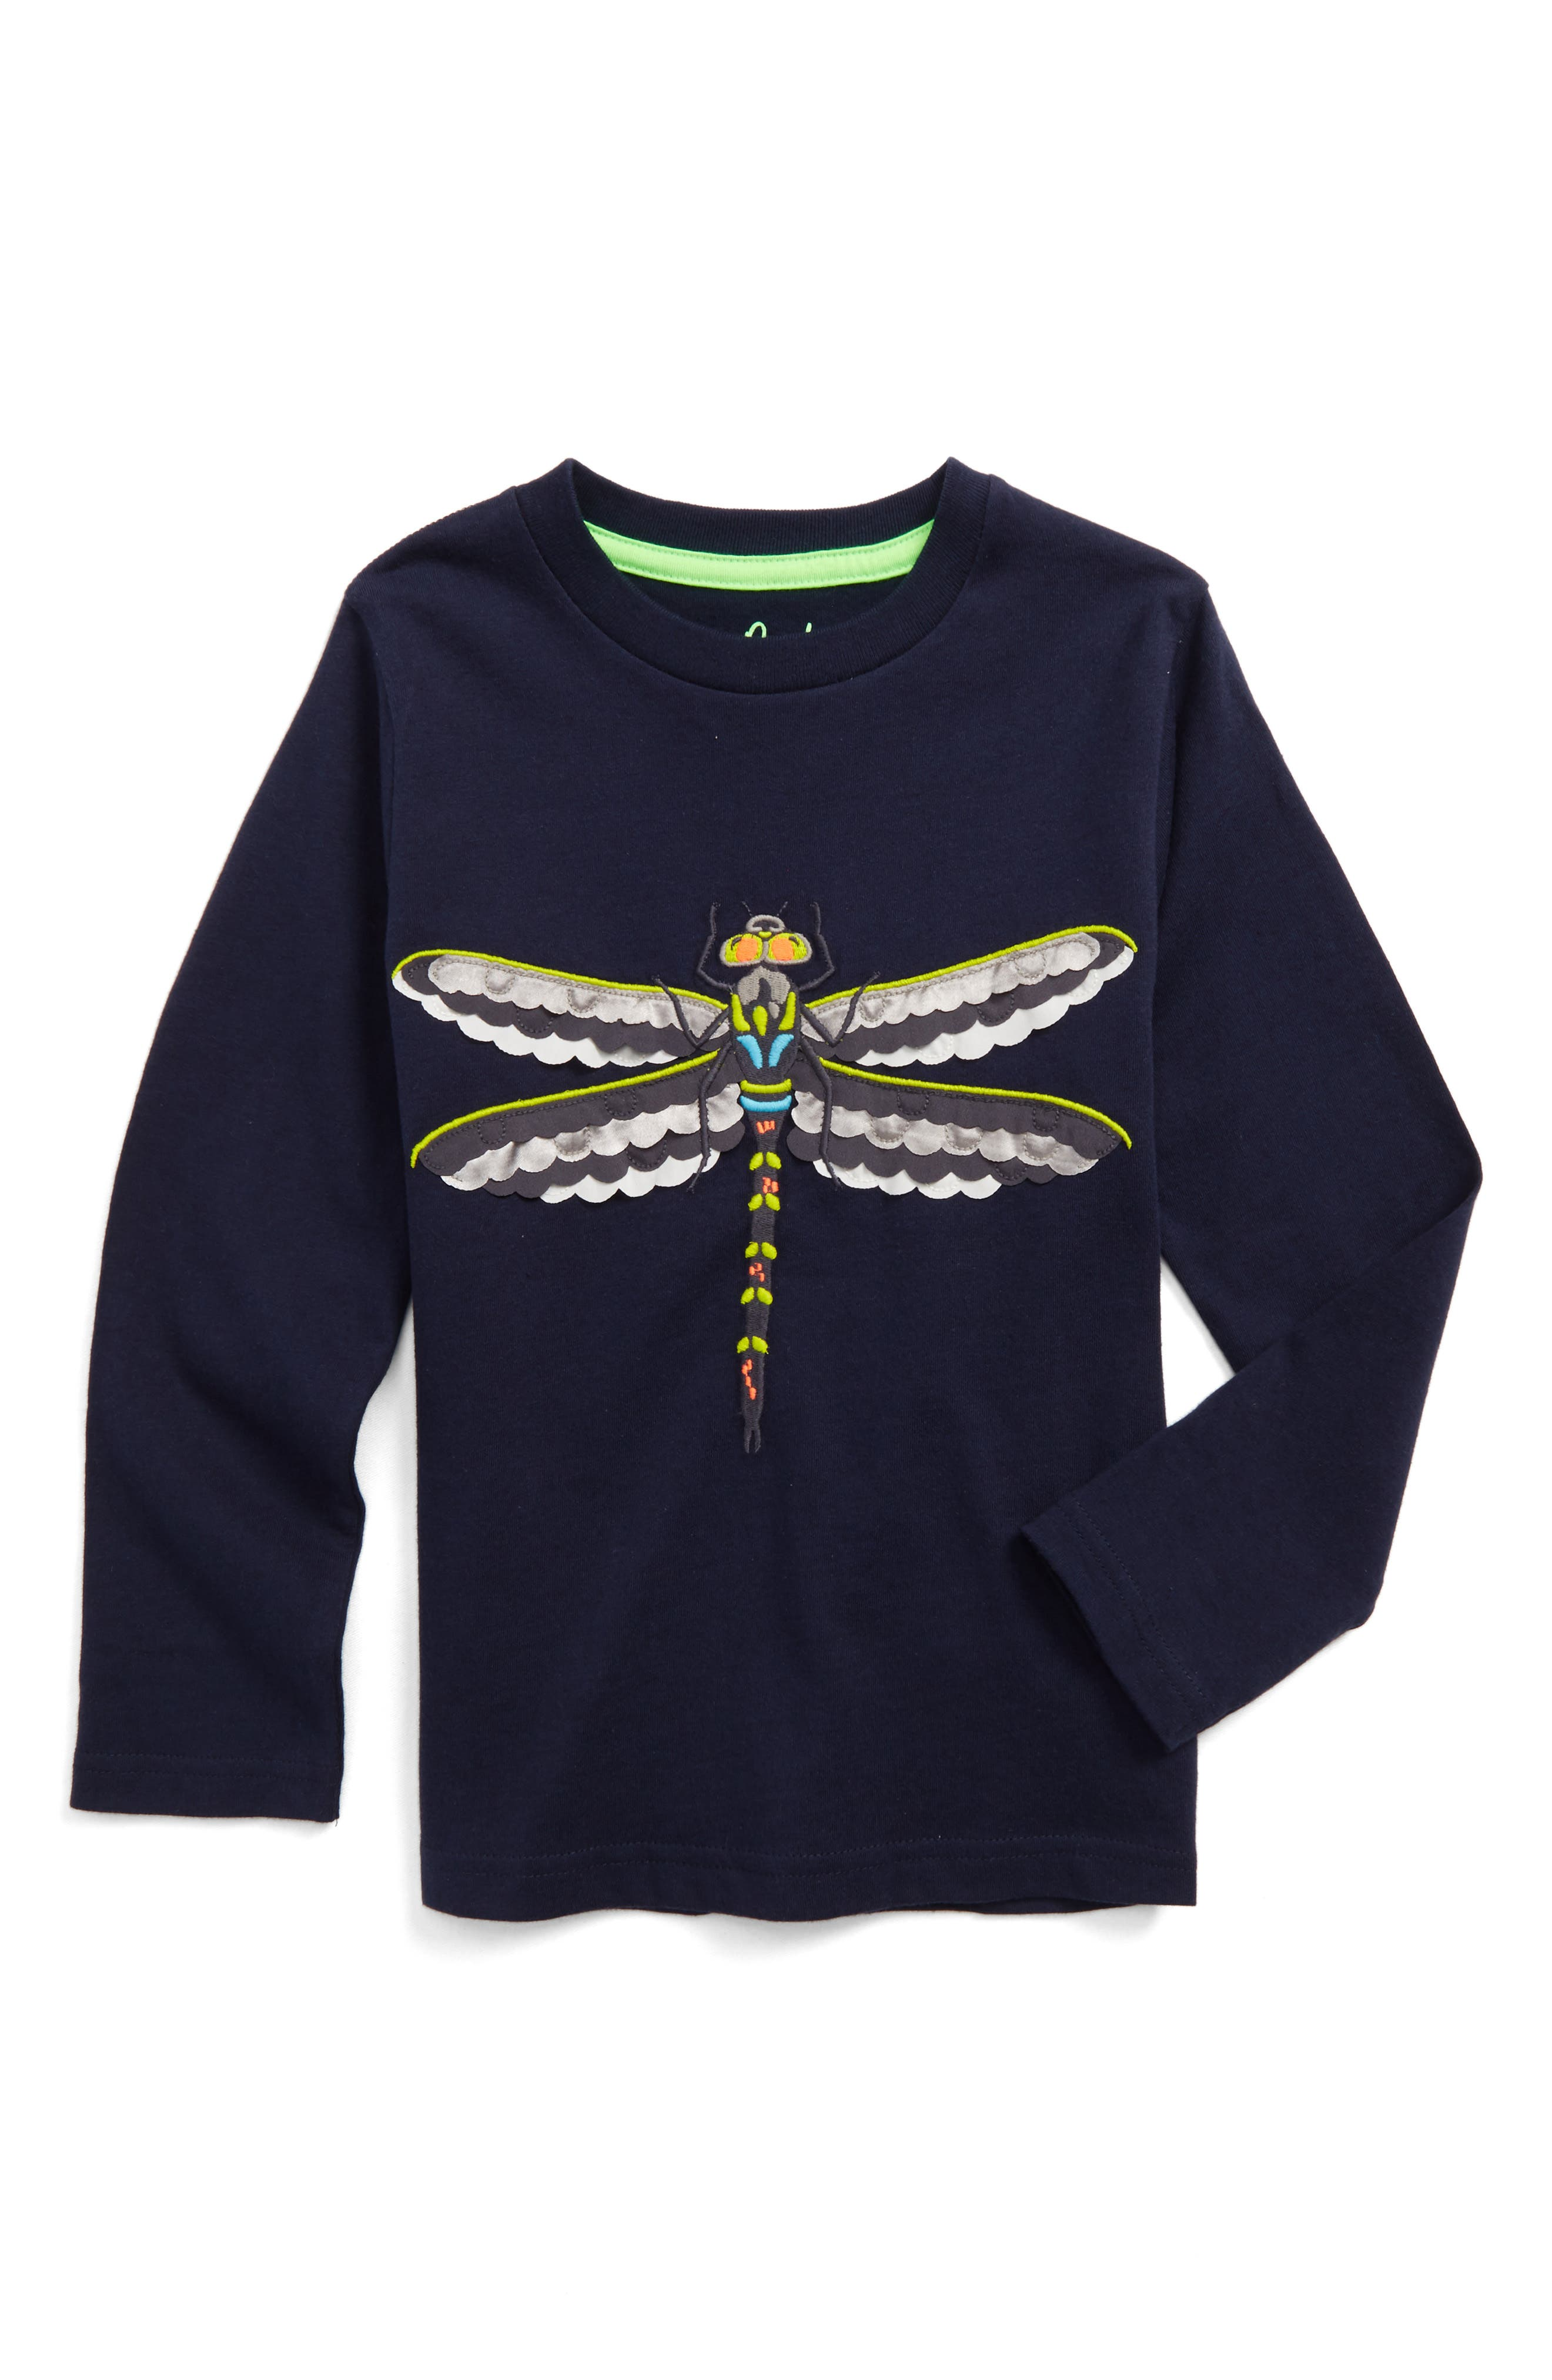 Main Image - Mini Boden Textured Creature T-Shirt (Toddler Boys, Little Boys & Big Boys)